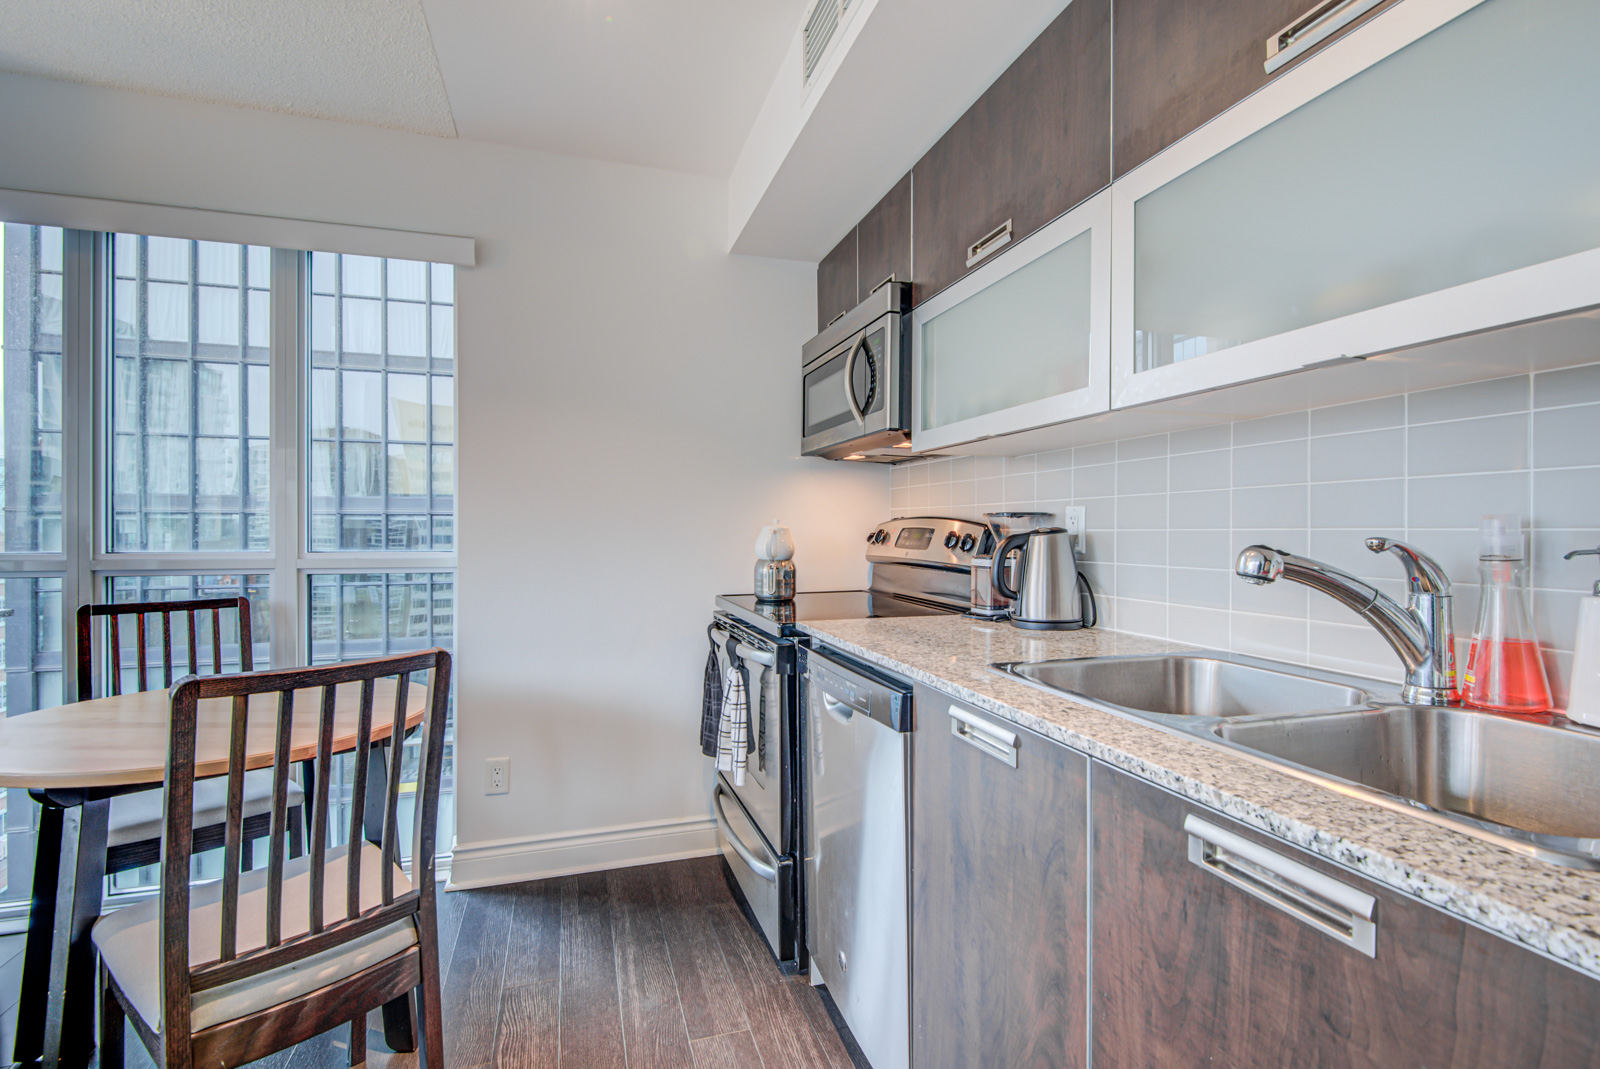 Linear kitchen of 28 Ted Rogers Unit 1702 with built-in appliances, wooden cupboards and frosted-glass shelves.